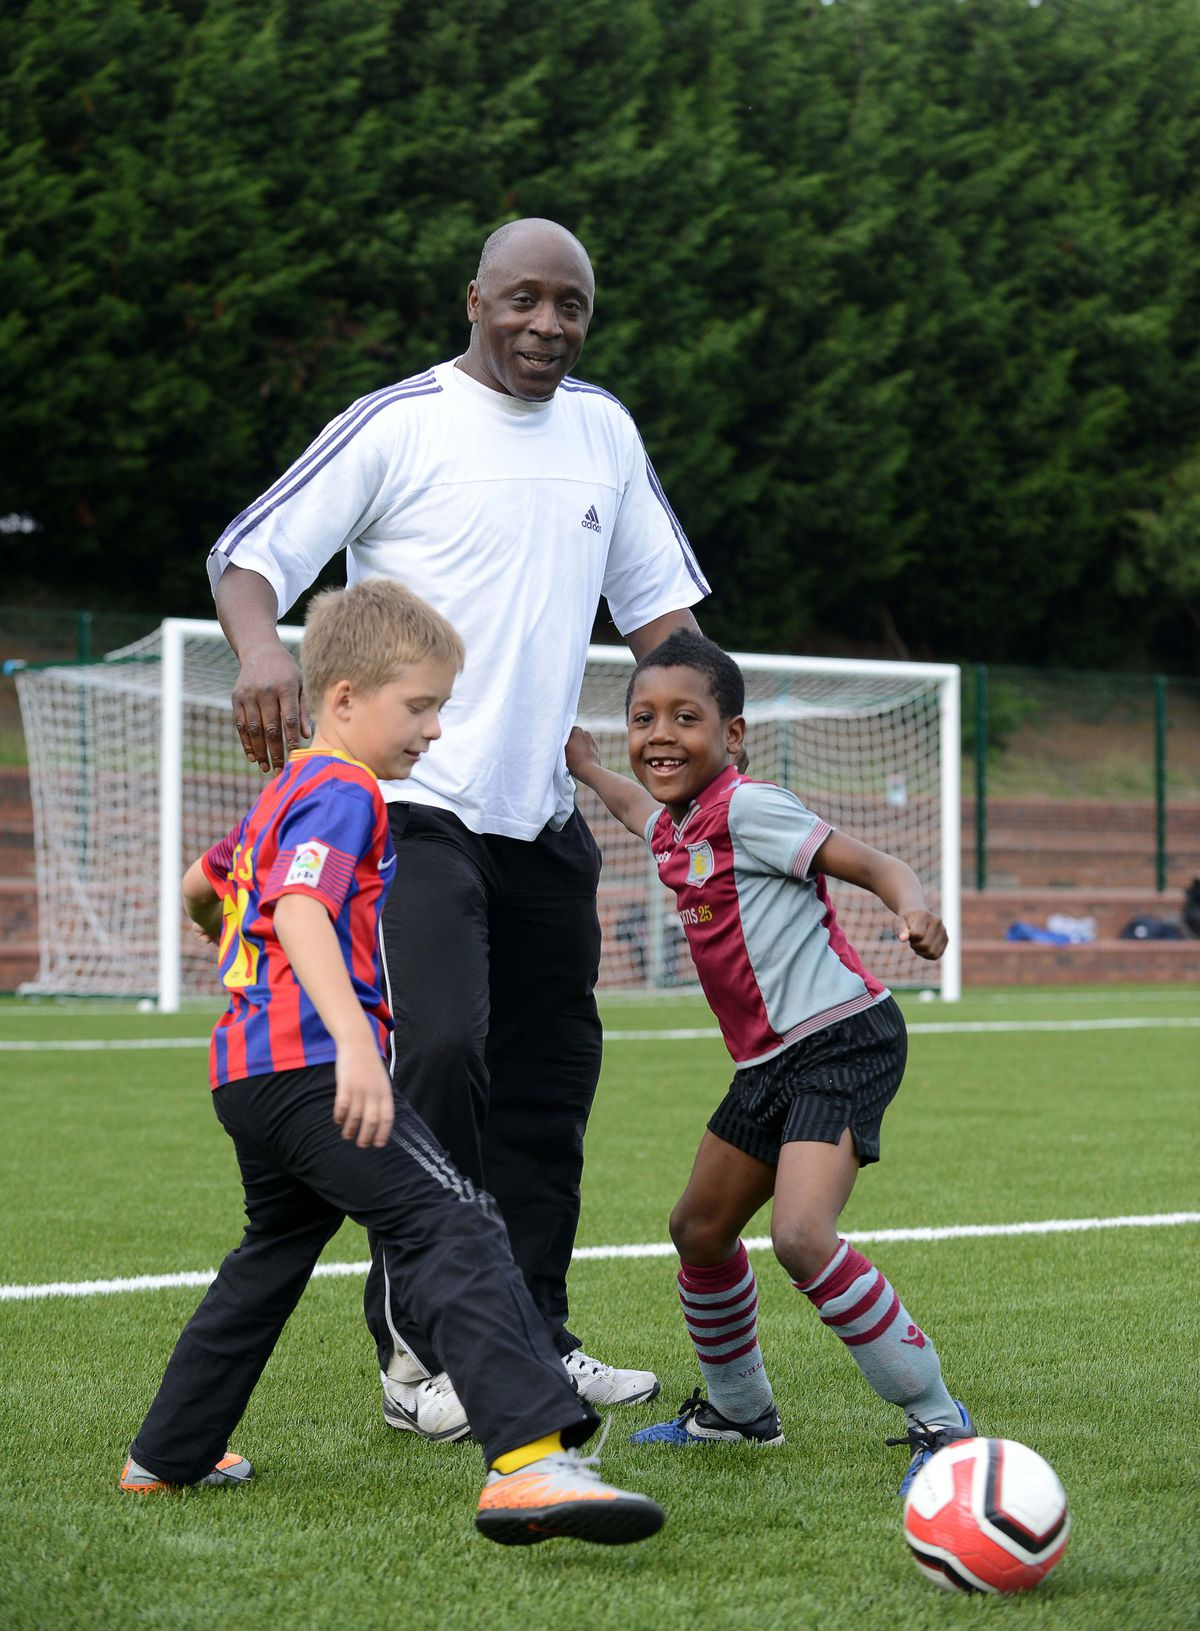 Garry tests the new 3G pitch with youngsters at Hadley Stadium Leisure Centre